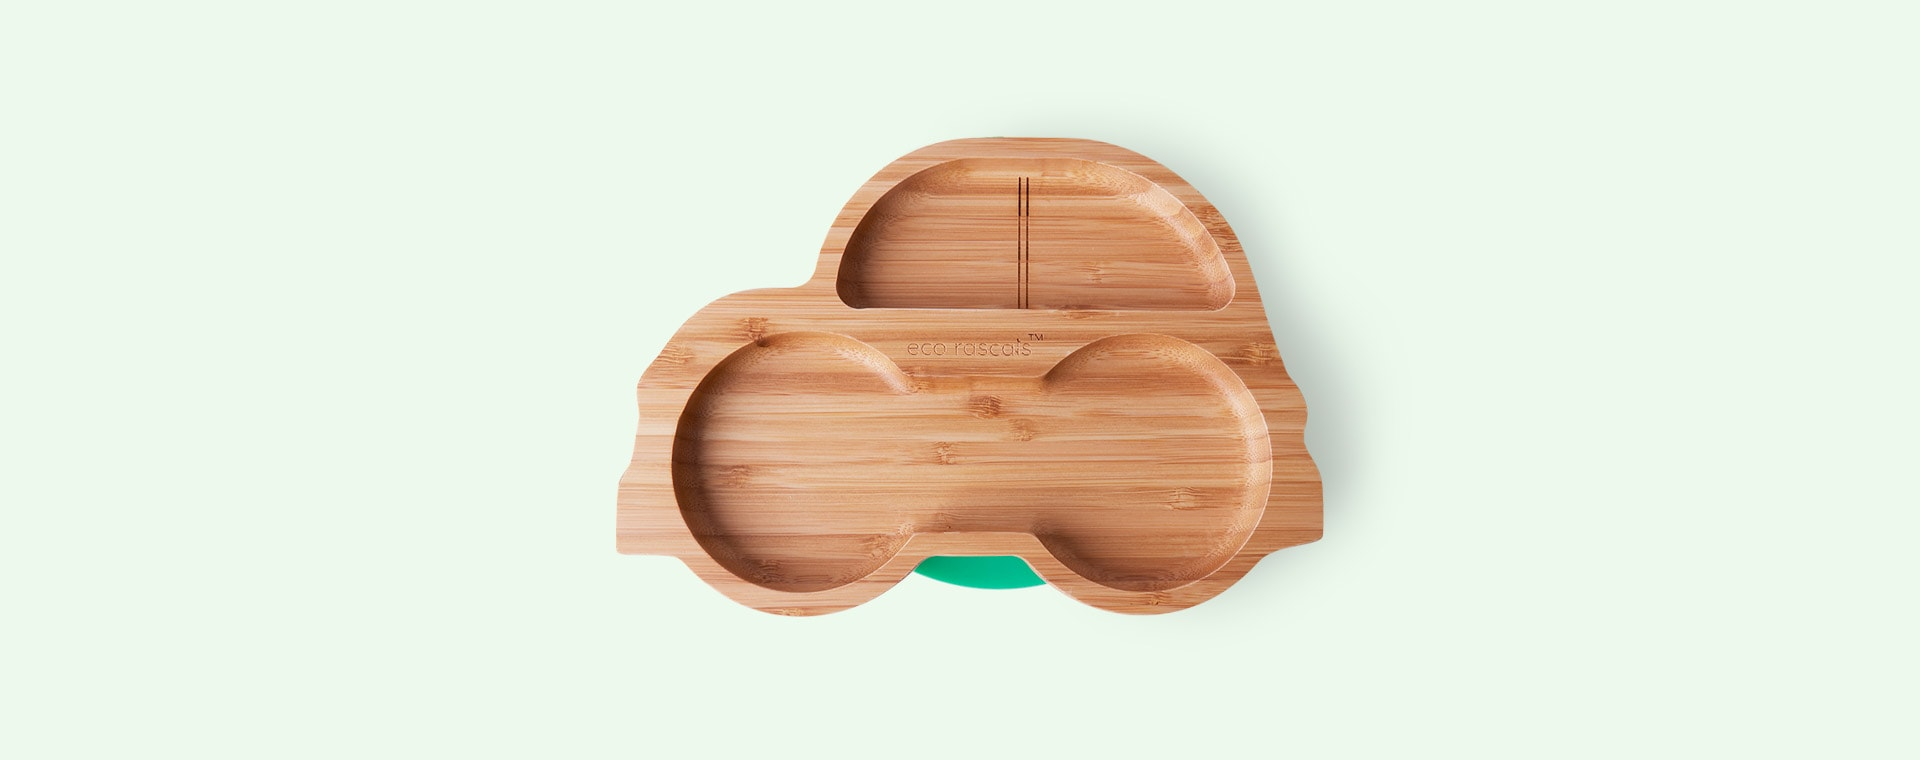 Green eco rascals Bamboo Suction Car Toddler Plate